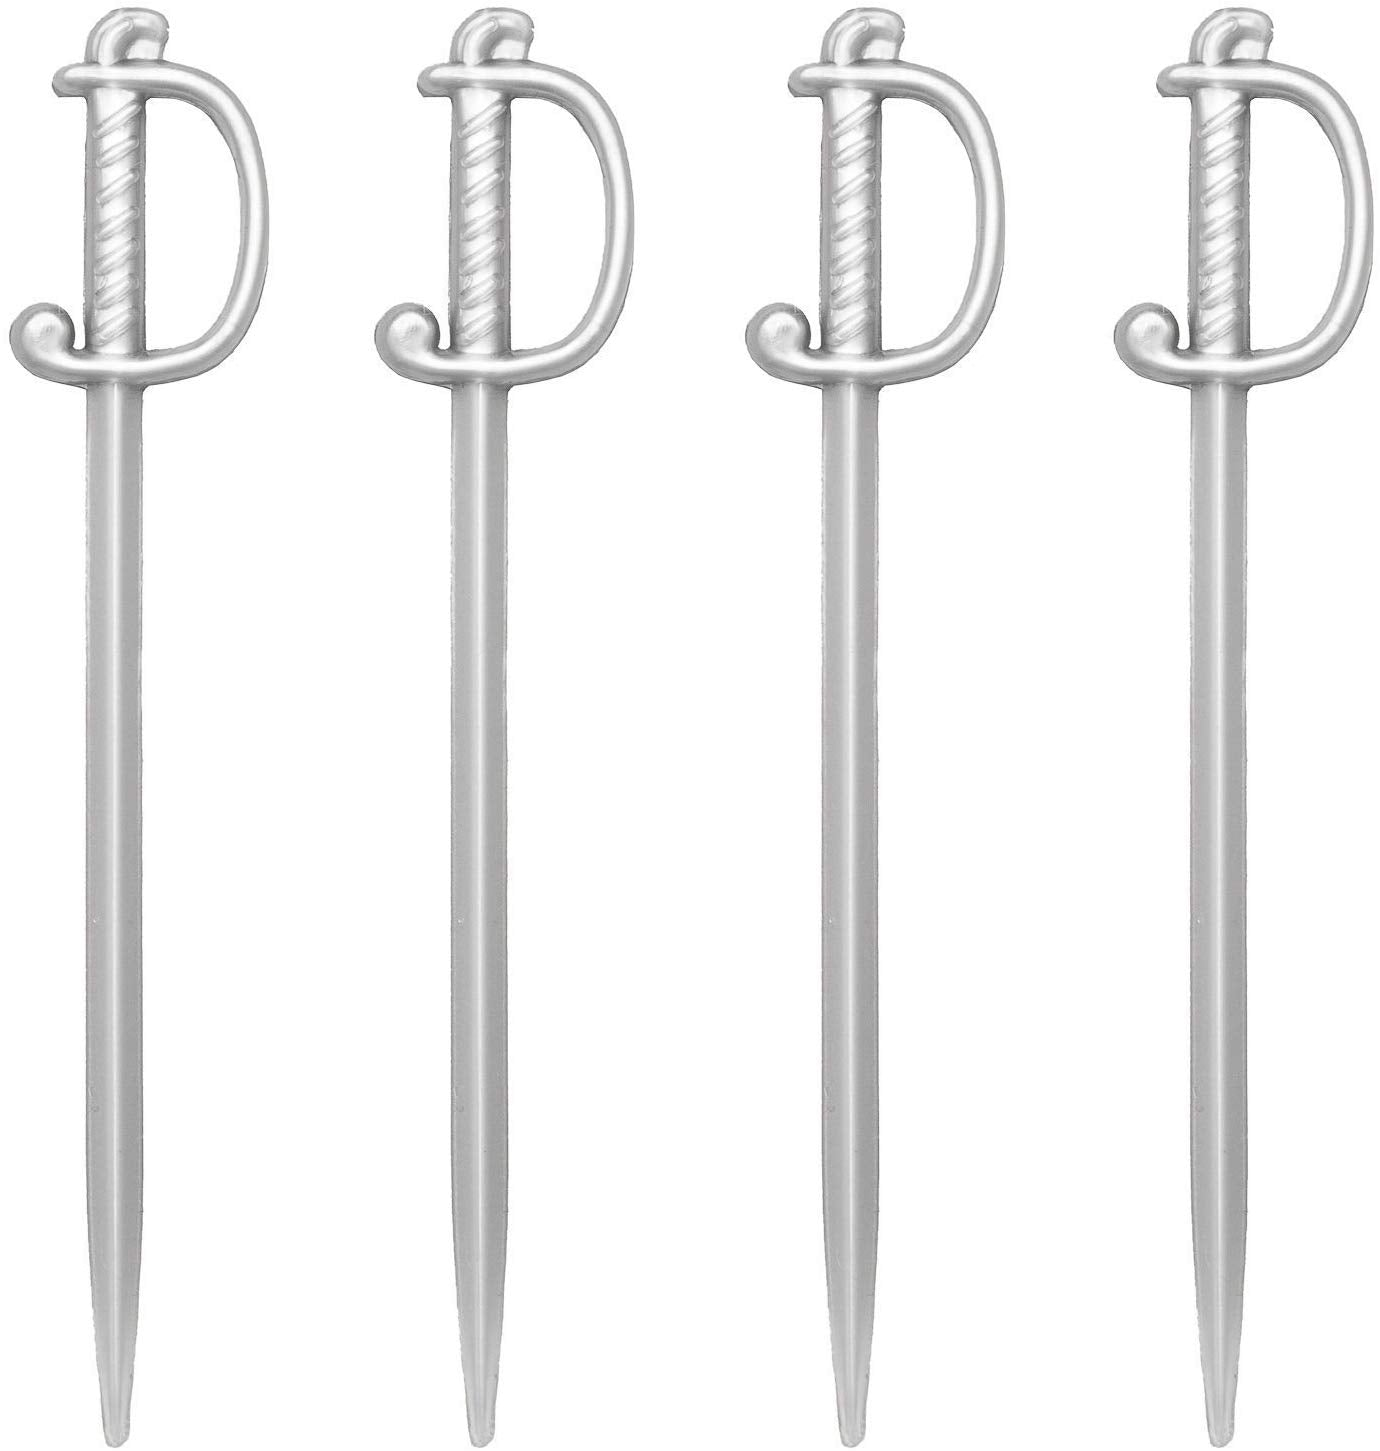 Silver Sword Cocktail and Food Picks - oddgifts.com